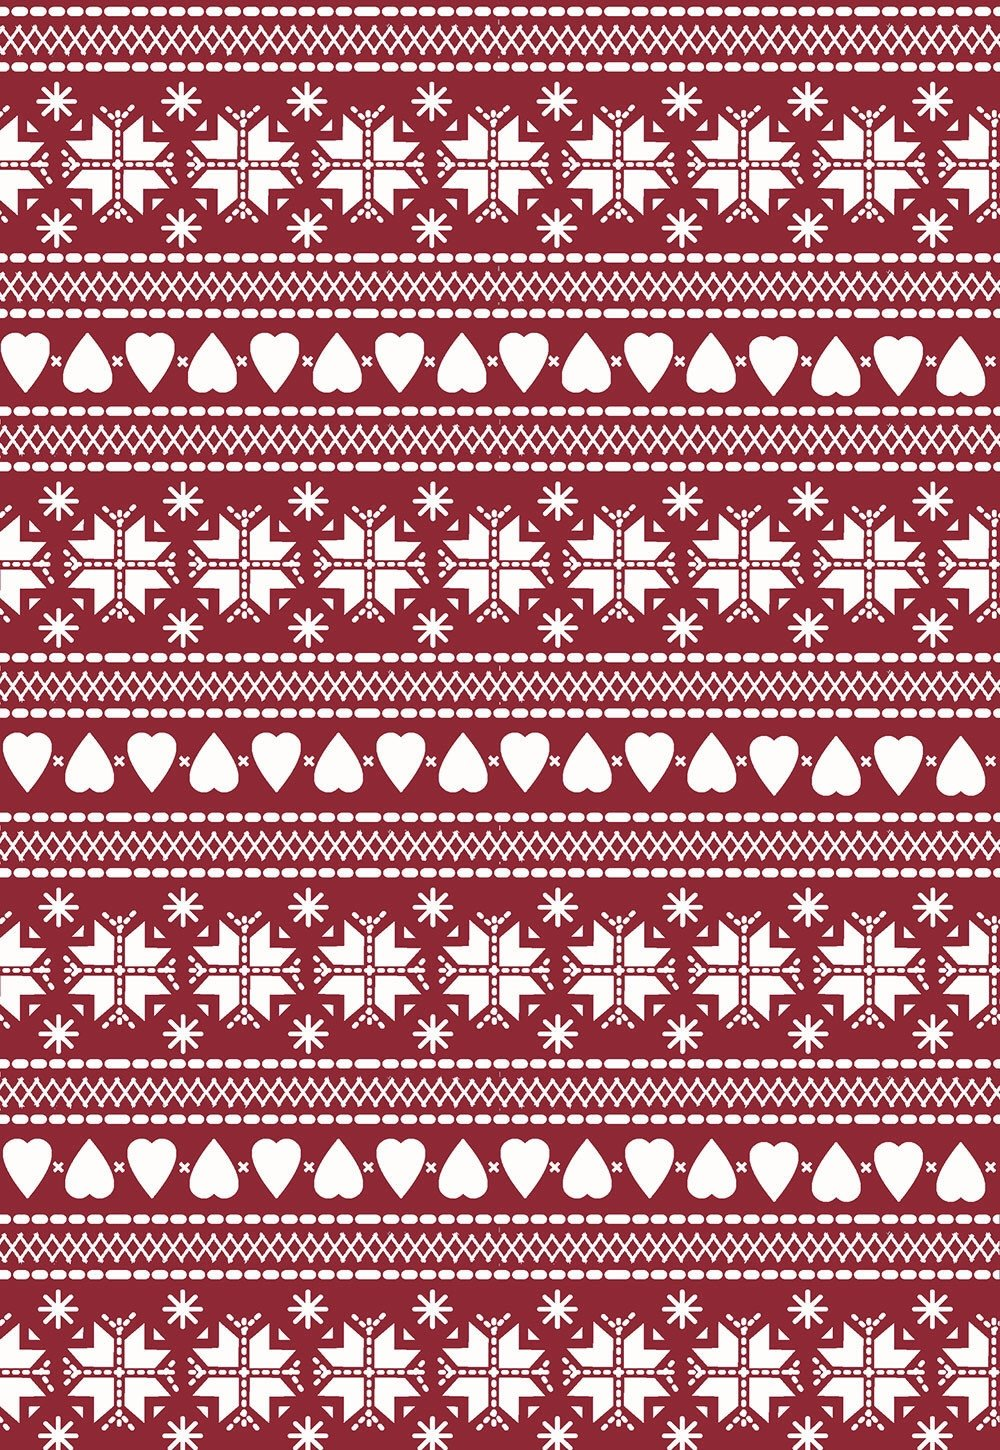 Nordic Hygge - Sweater Print Red